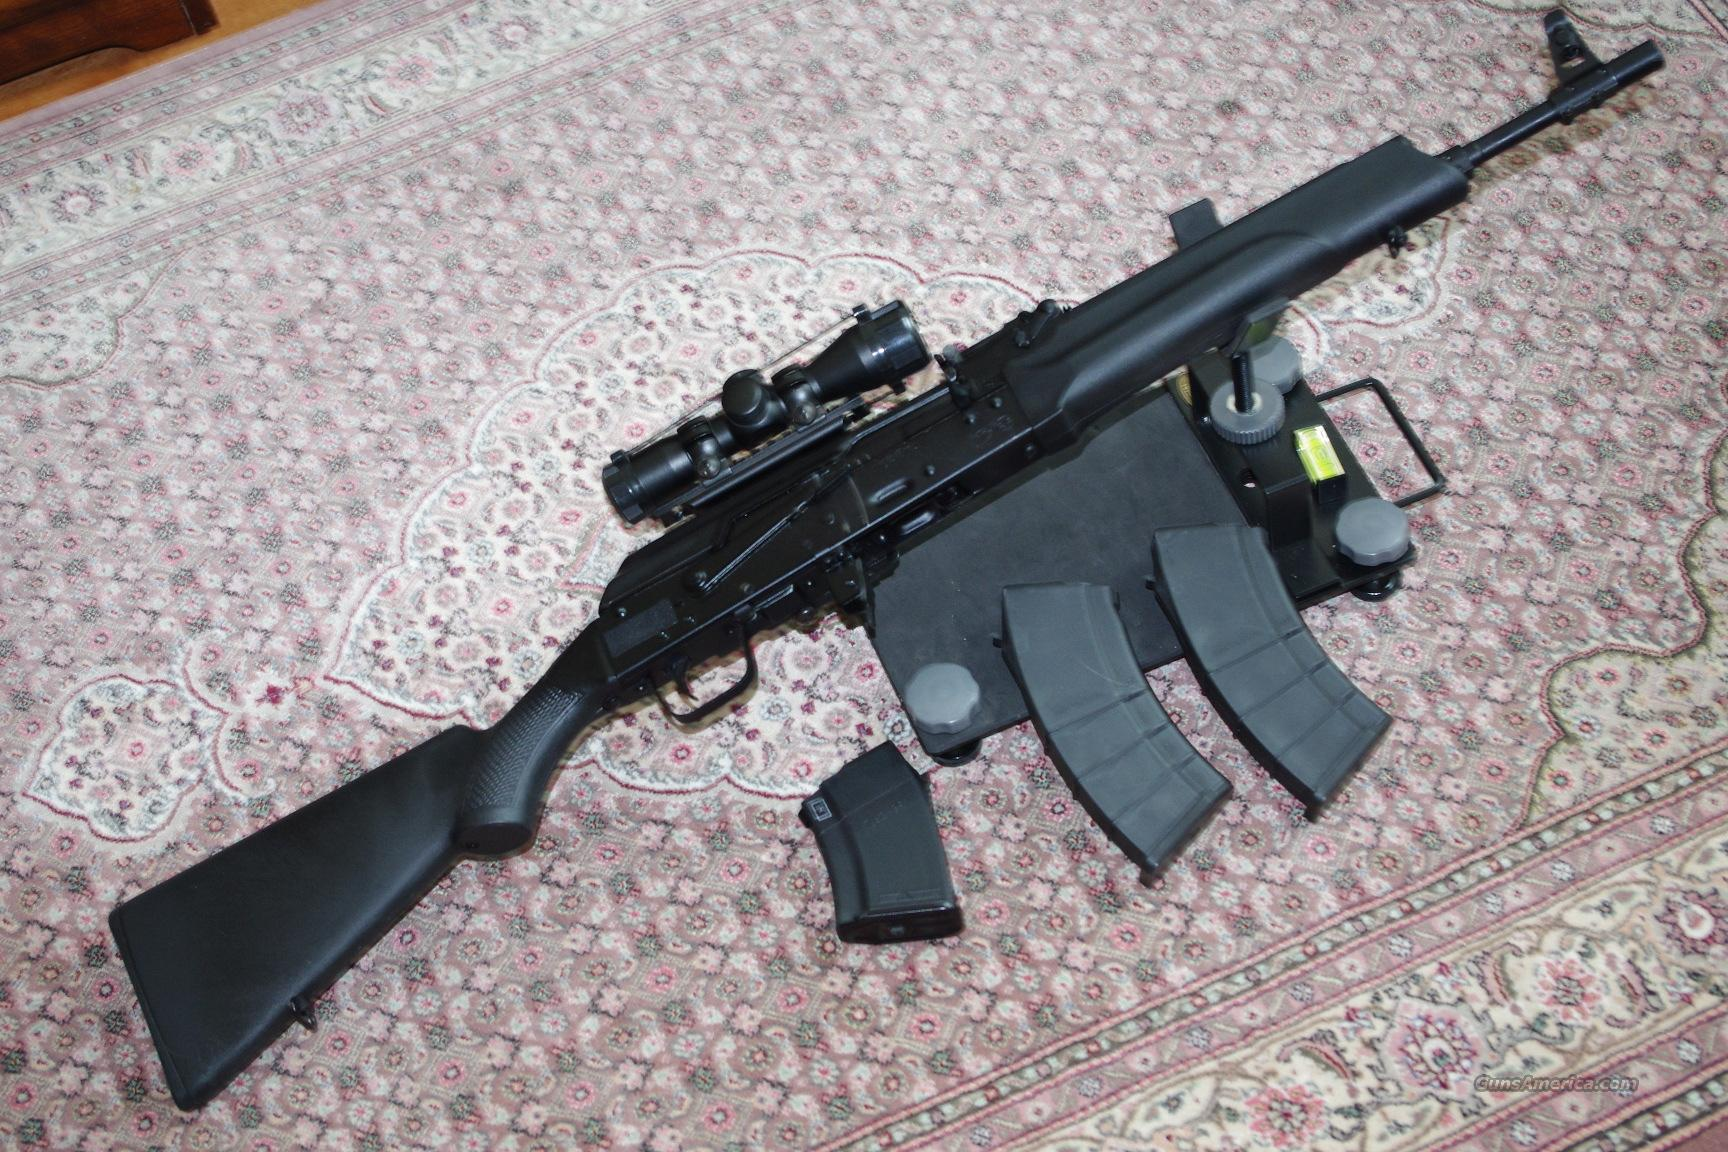 Saiga AK47 AK-47 IZ-132 Carbine 7.62x39 + 2-20 Rnd Mags & 4x30 Scope LNIB  Guns > Rifles > AK-47 Rifles (and copies) > Full Stock